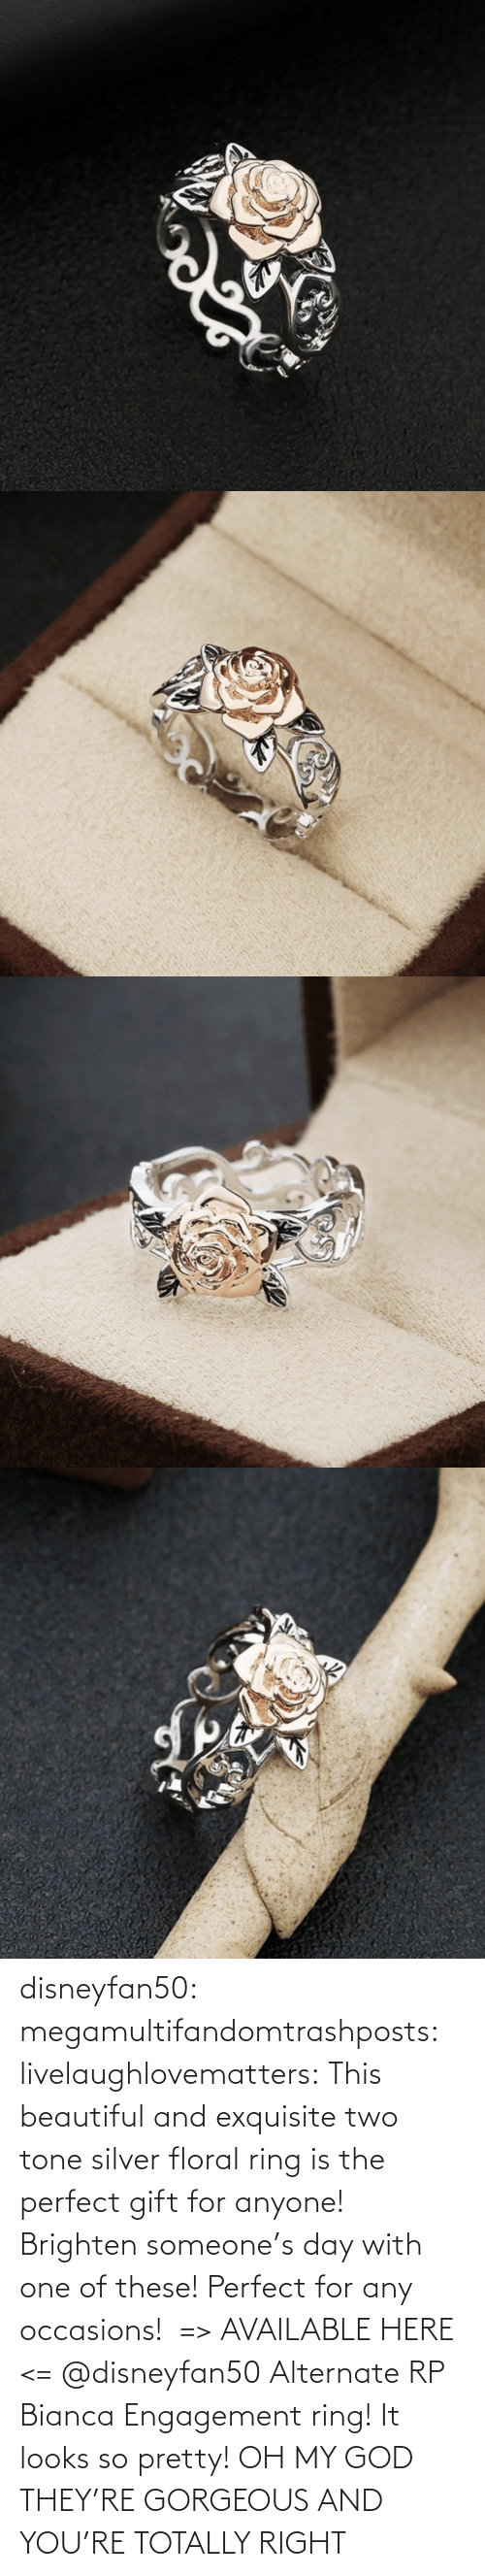 Beautiful, Gif, and God: disneyfan50: megamultifandomtrashposts:  livelaughlovematters:  This beautiful and exquisite two tone silver floral ring is the perfect gift for anyone! Brighten someone's day with one of these! Perfect for any occasions!  => AVAILABLE HERE <=    @disneyfan50 Alternate RP Bianca Engagement ring! It looks so pretty!  OH MY GOD THEY'RE GORGEOUS AND YOU'RE TOTALLY RIGHT